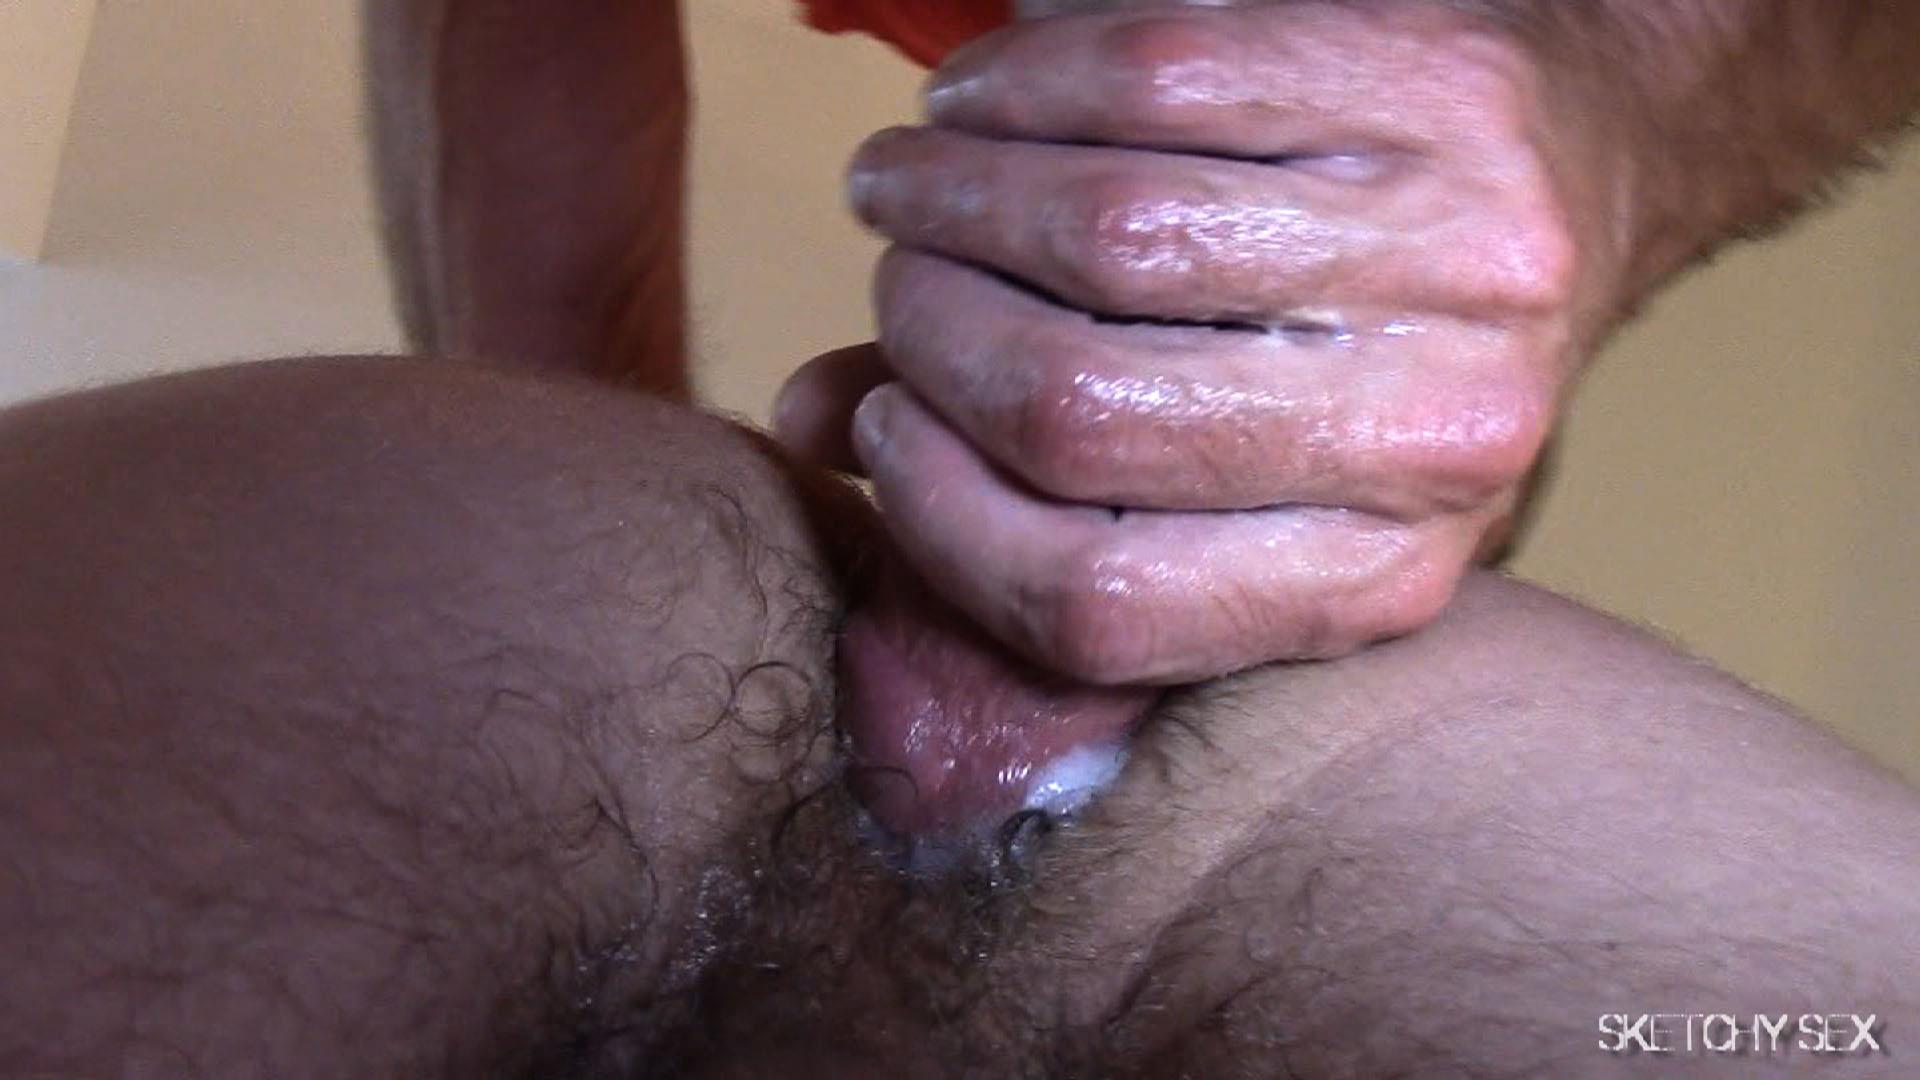 "Sketchy-Sex-Nate-Getting-Fucked-Bareback-By-A-10-Inch-Craigslist-Cock-Amateur-Gay-Porn-10 Taking A 10"" Craigslist Cock Bareback While The Roommate Watches"